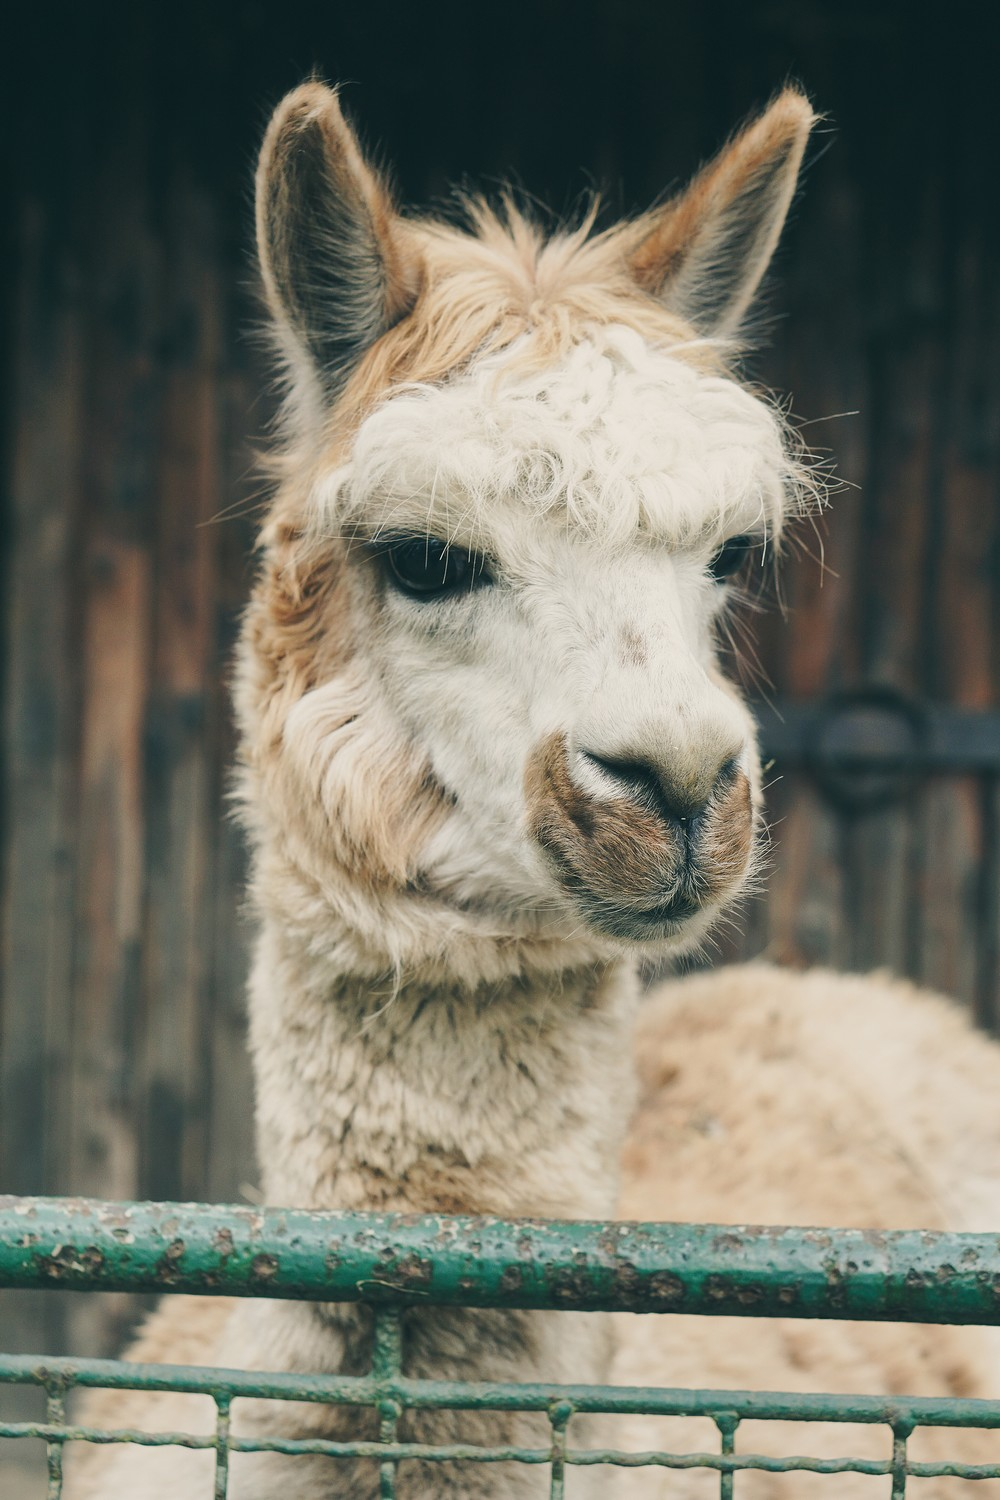 Llama - Top Things to Do in Latvia